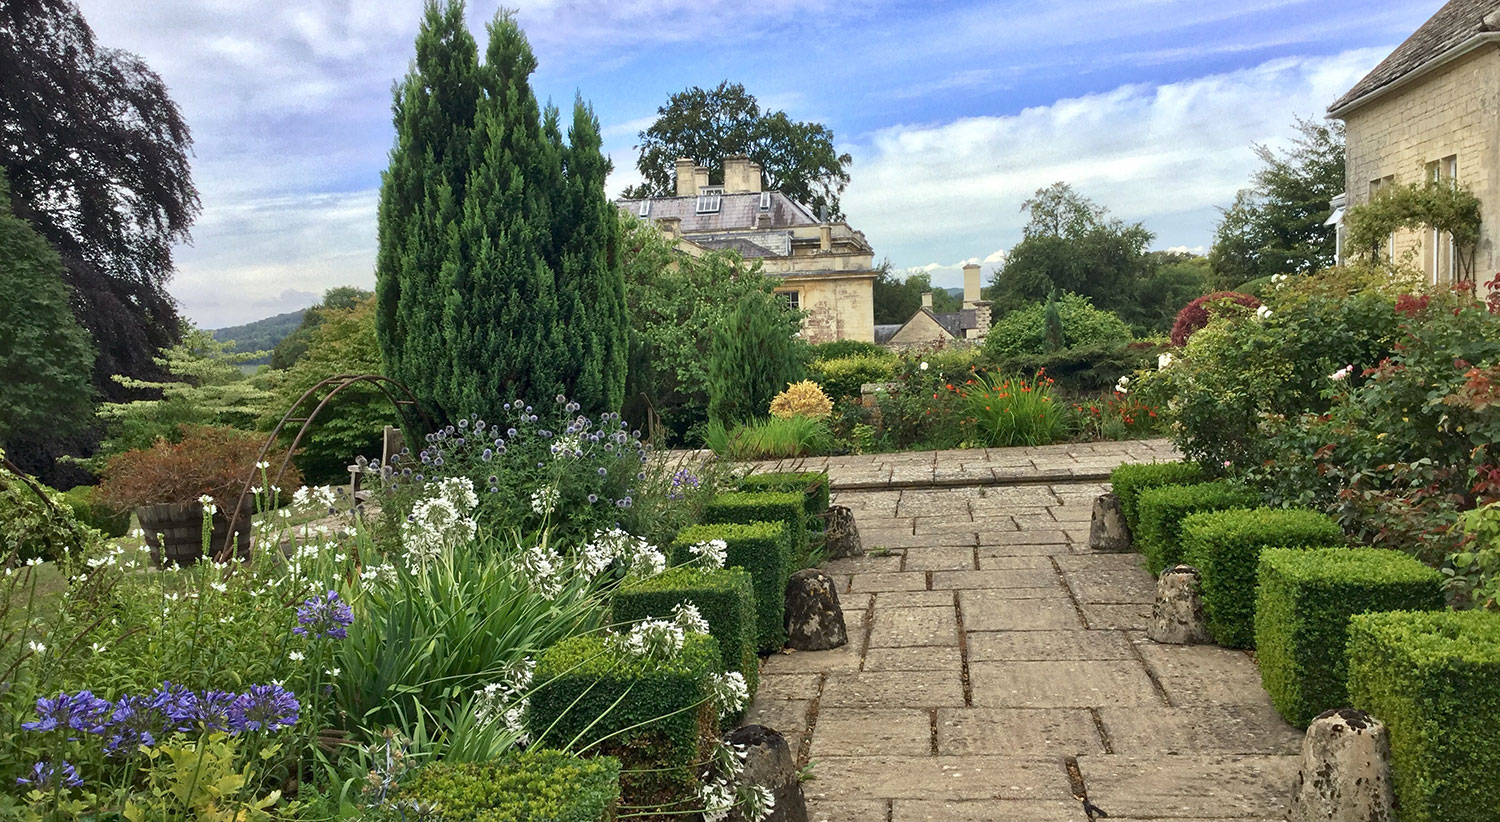 ONE OF MANY BEAUTIFUL HERITAGE GARDENS IN THE COTSWOLDS